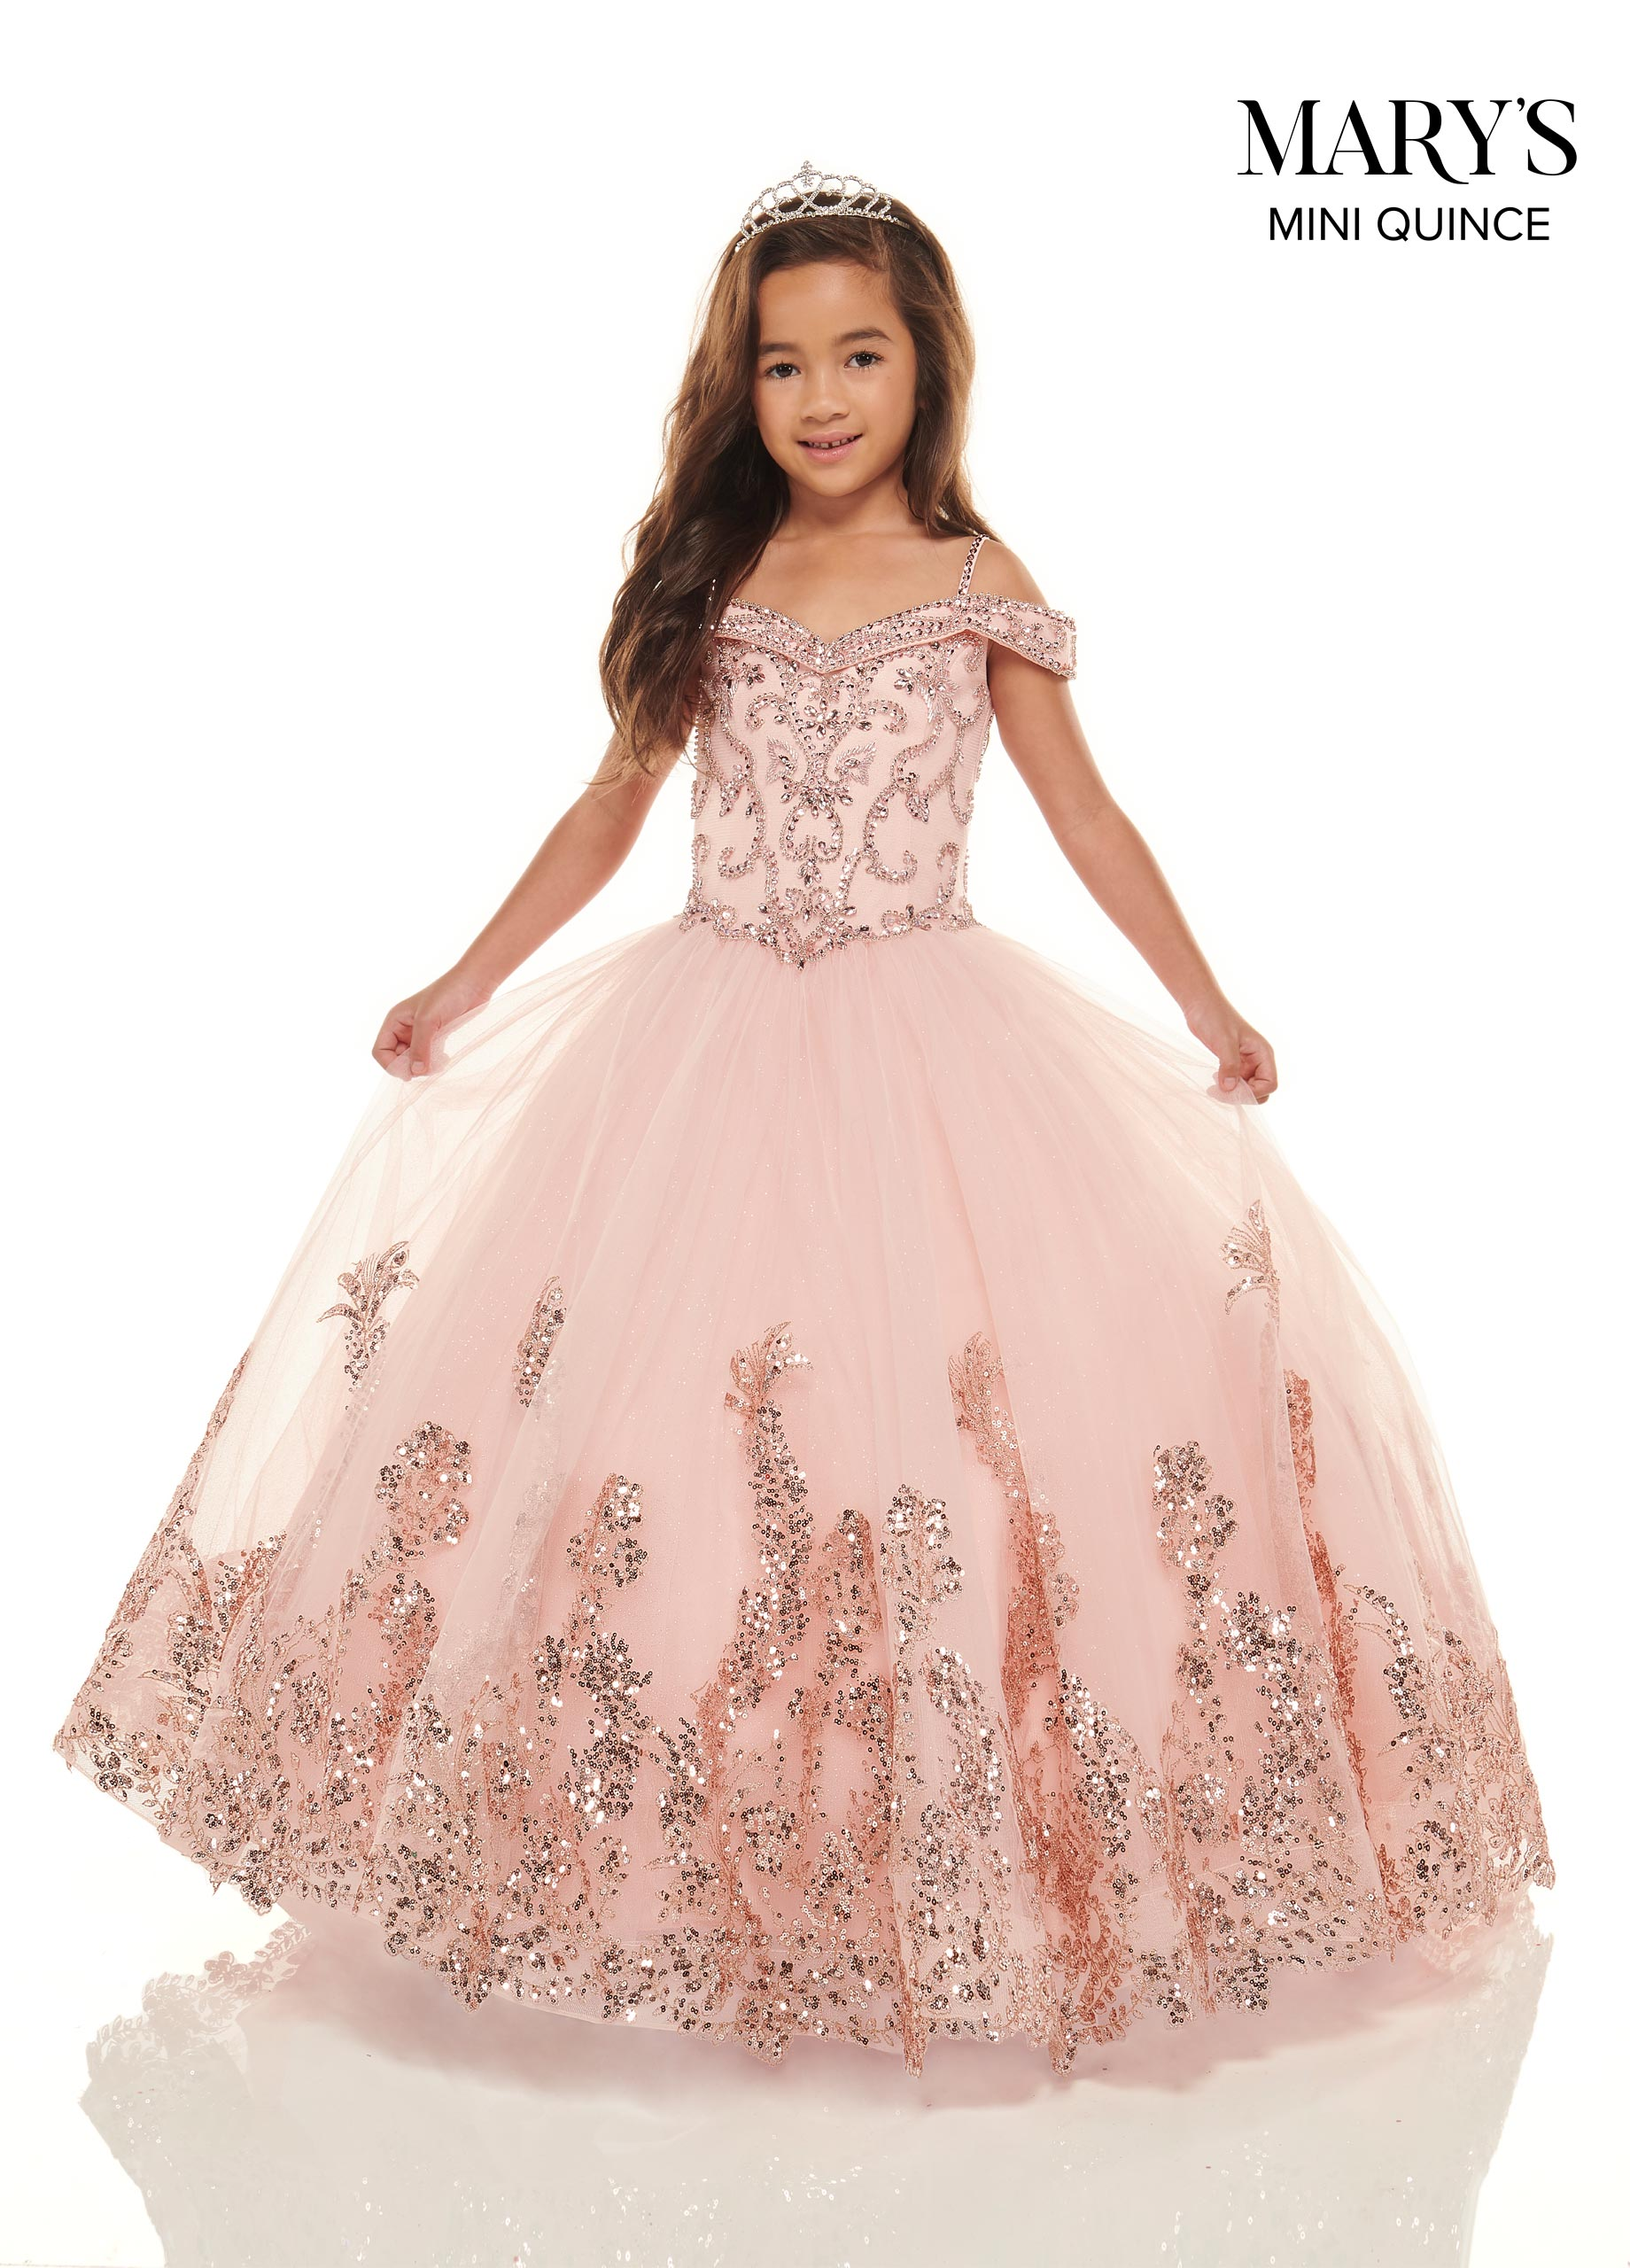 Little Quince Dresses  Style - MQ7 in Blush/Rose Gold, Jade